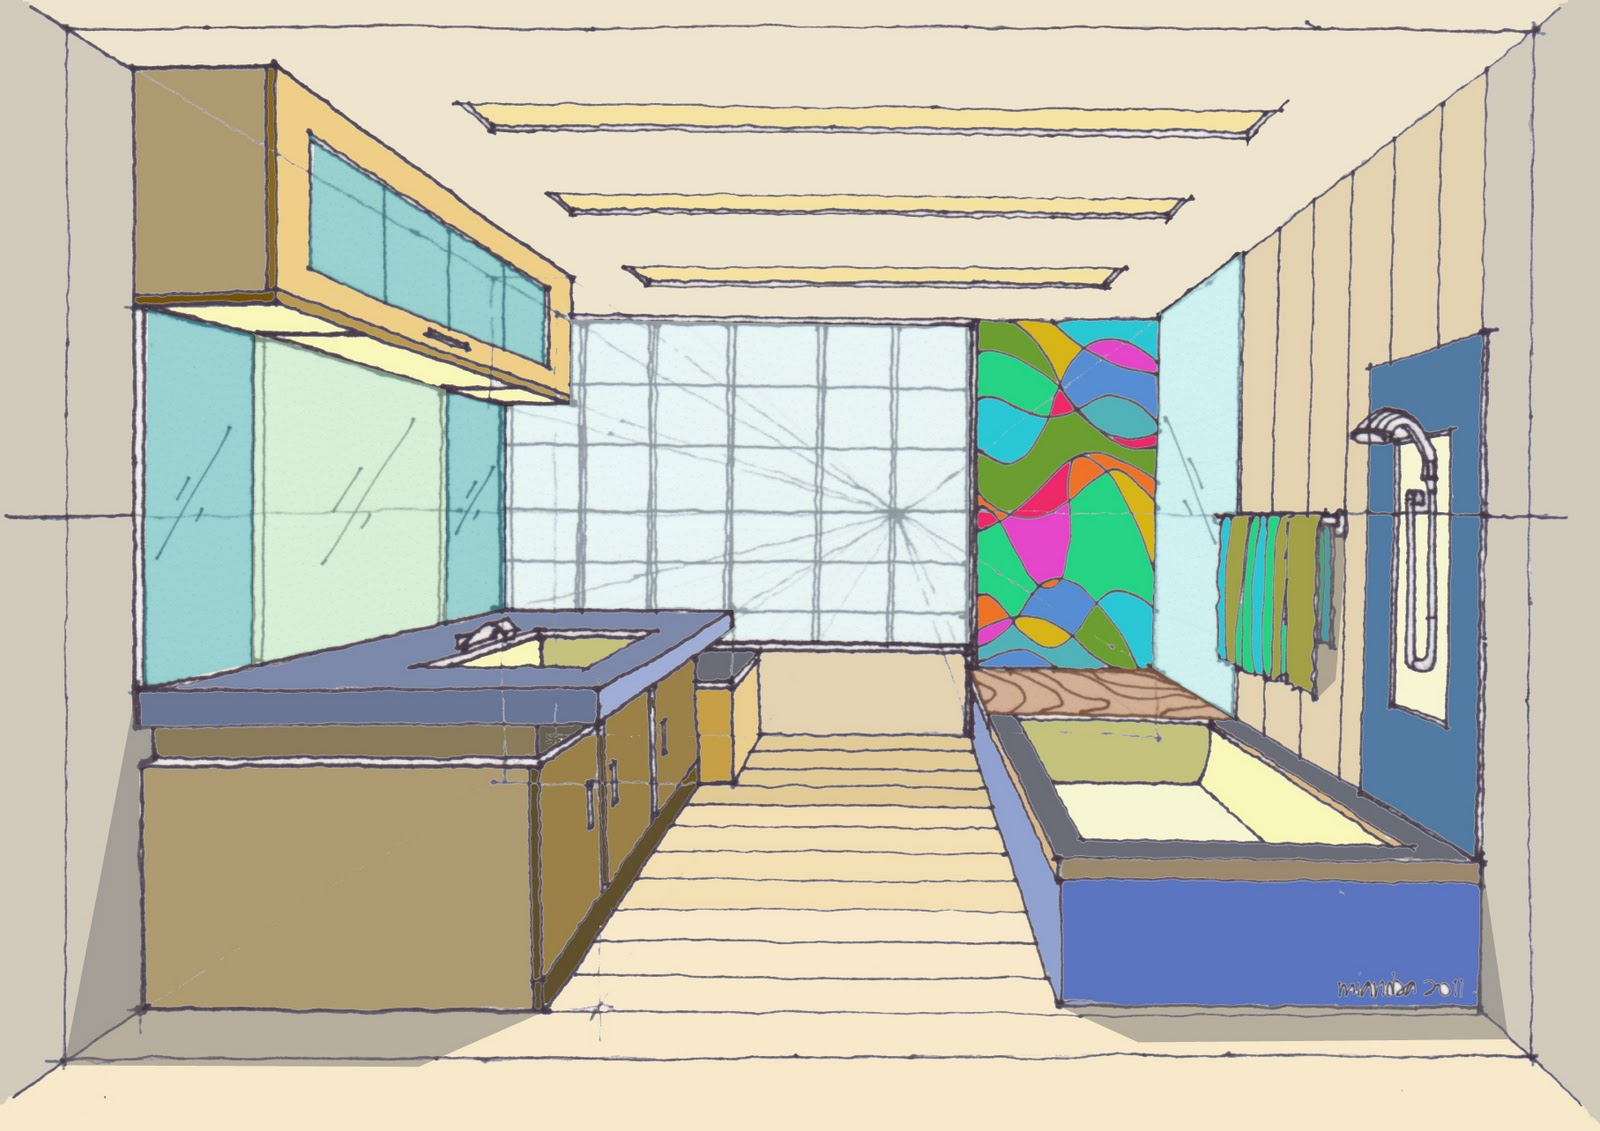 How to draw a room 220211 drawing and paint for Draw my room